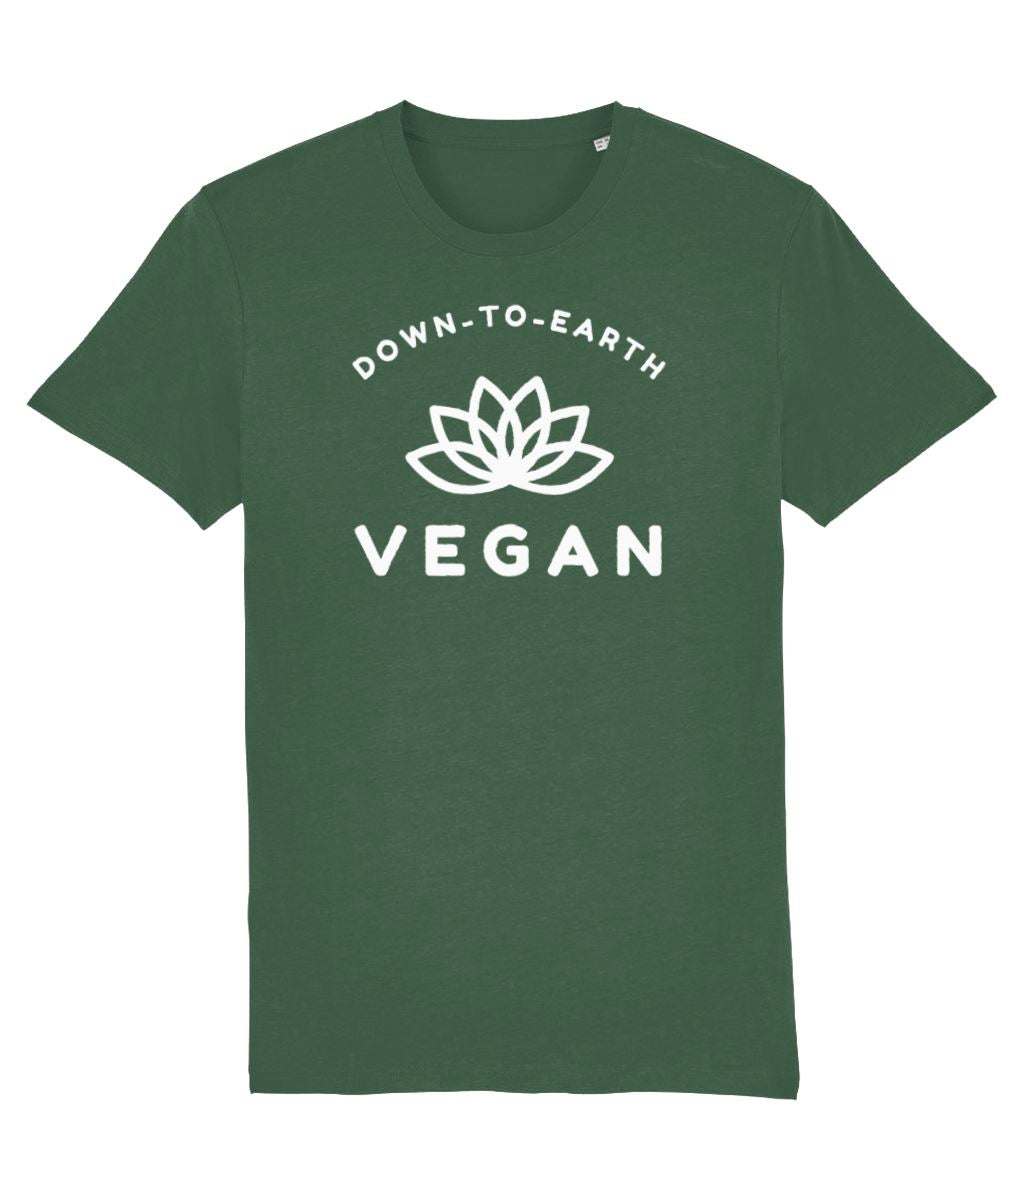 """Down-To-Earth Vegan"" - Those Vegan Guys T-Shirt (Unisex) - Dark Colours Clothing Vegan Original Bottle Green X-Small"